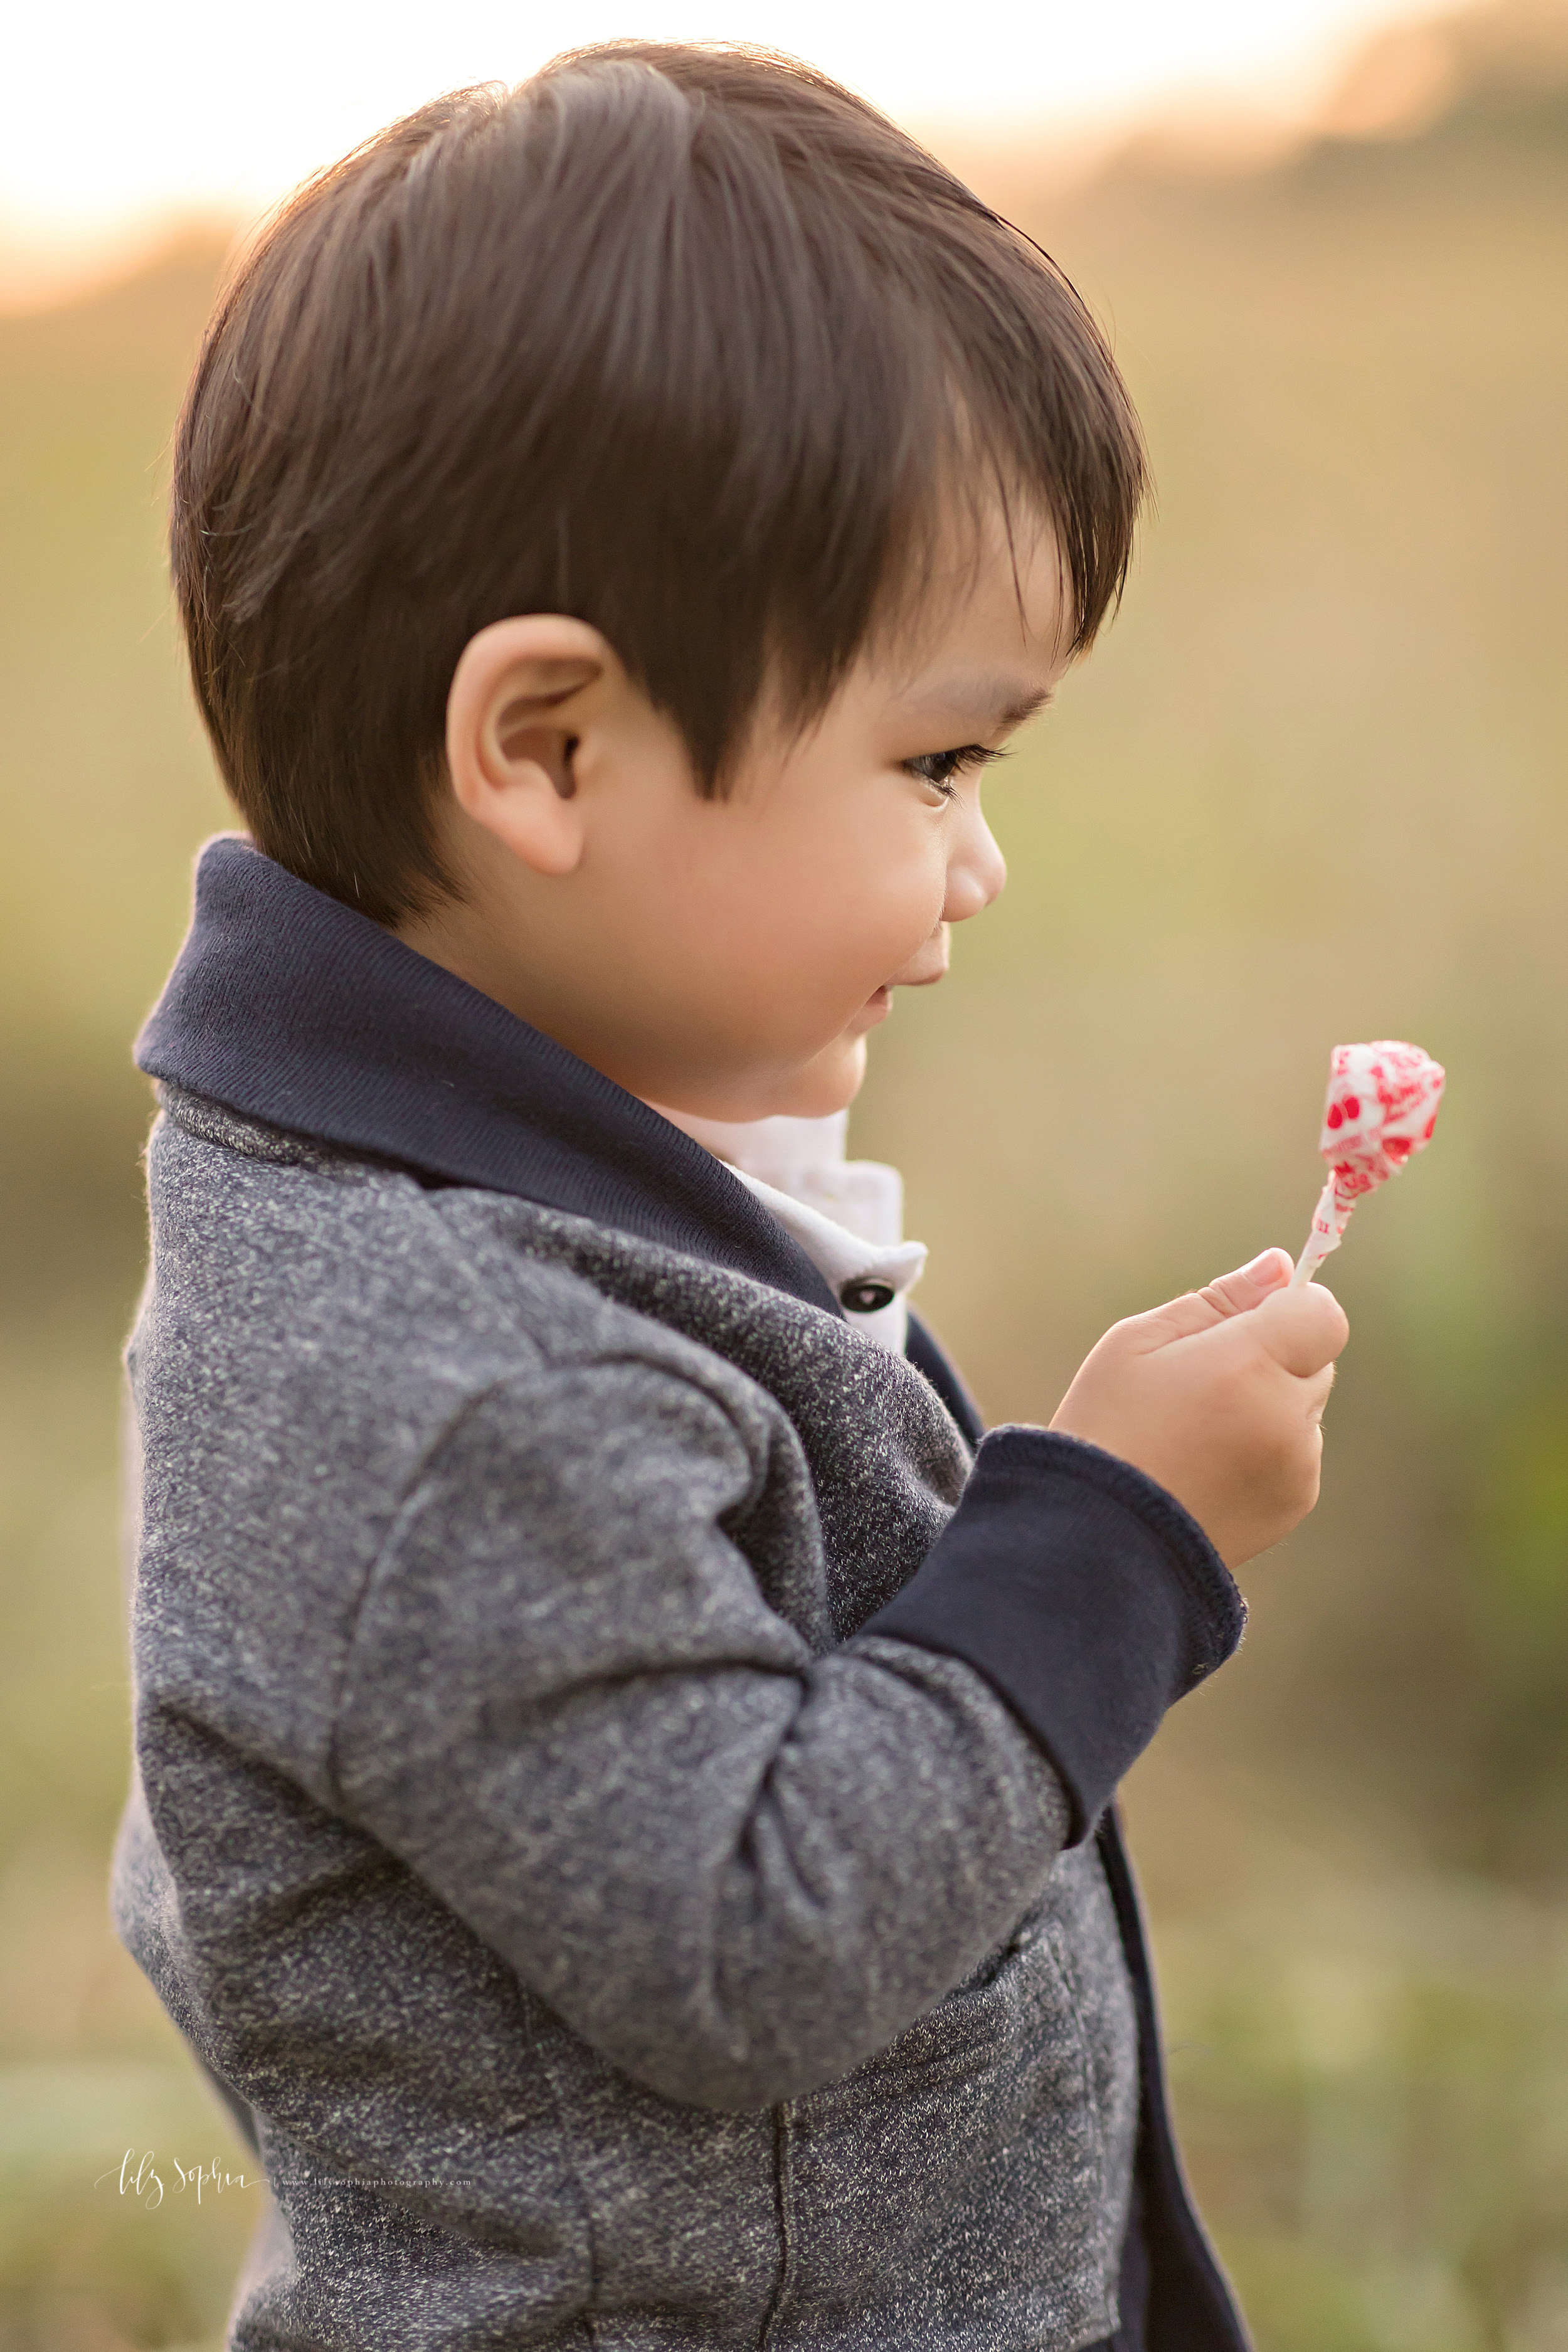 Close-up photograph of a two year old Asian boy admiring a lollipop in a field.